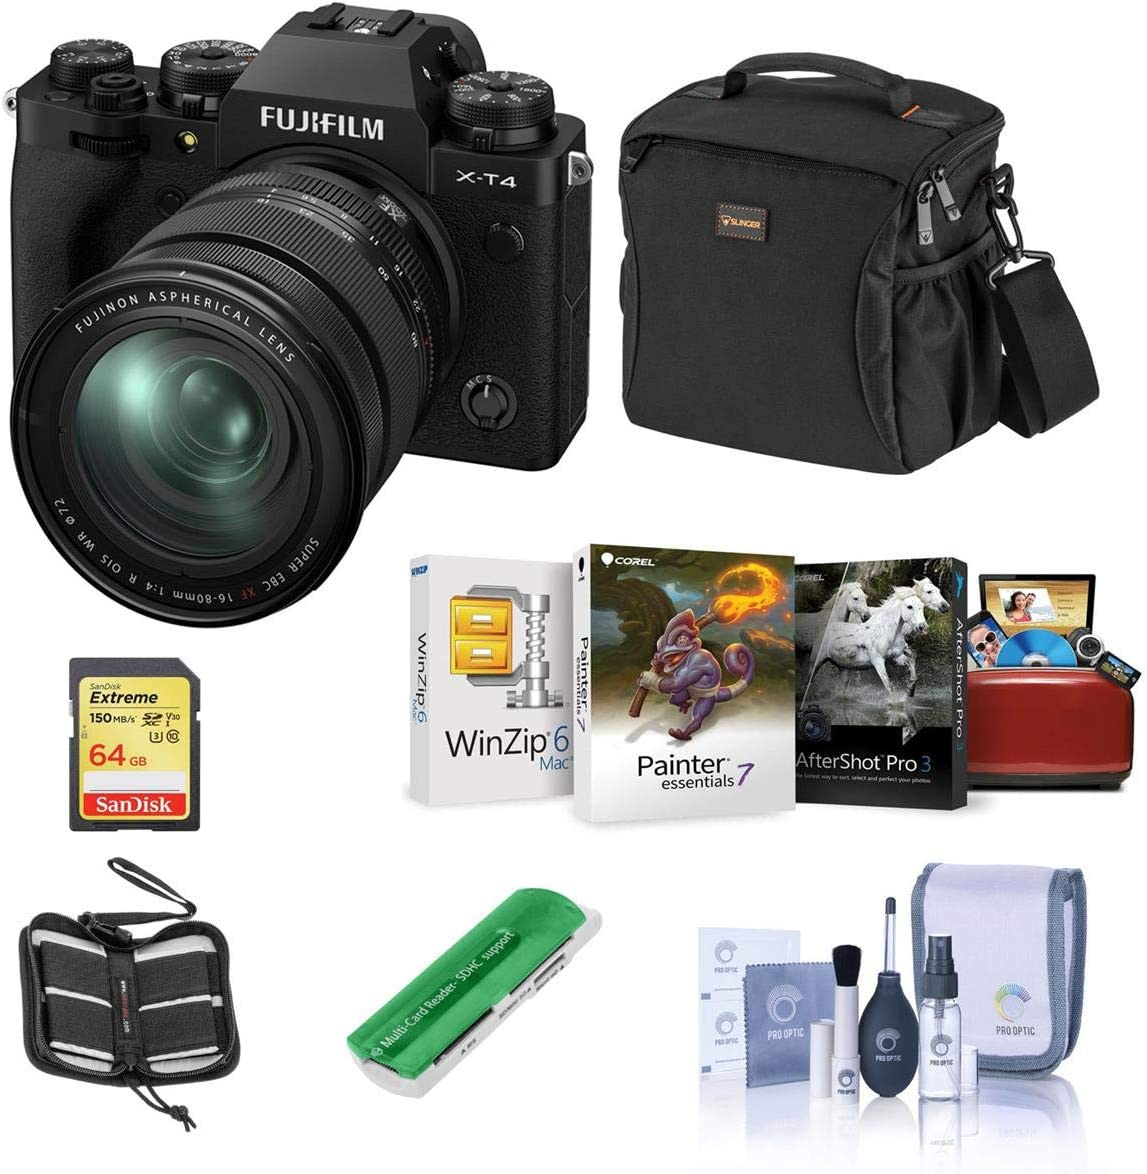 Fujifilm X-T4 Mirrorless Digital Camera with XF 16-80mm f/4R OIS WR Lens, Black - Bundle with Shoulder Bag, 32GB SDXC Card, Cleaning Kit, Card Reader, Memory Wallet, Mac Software Package